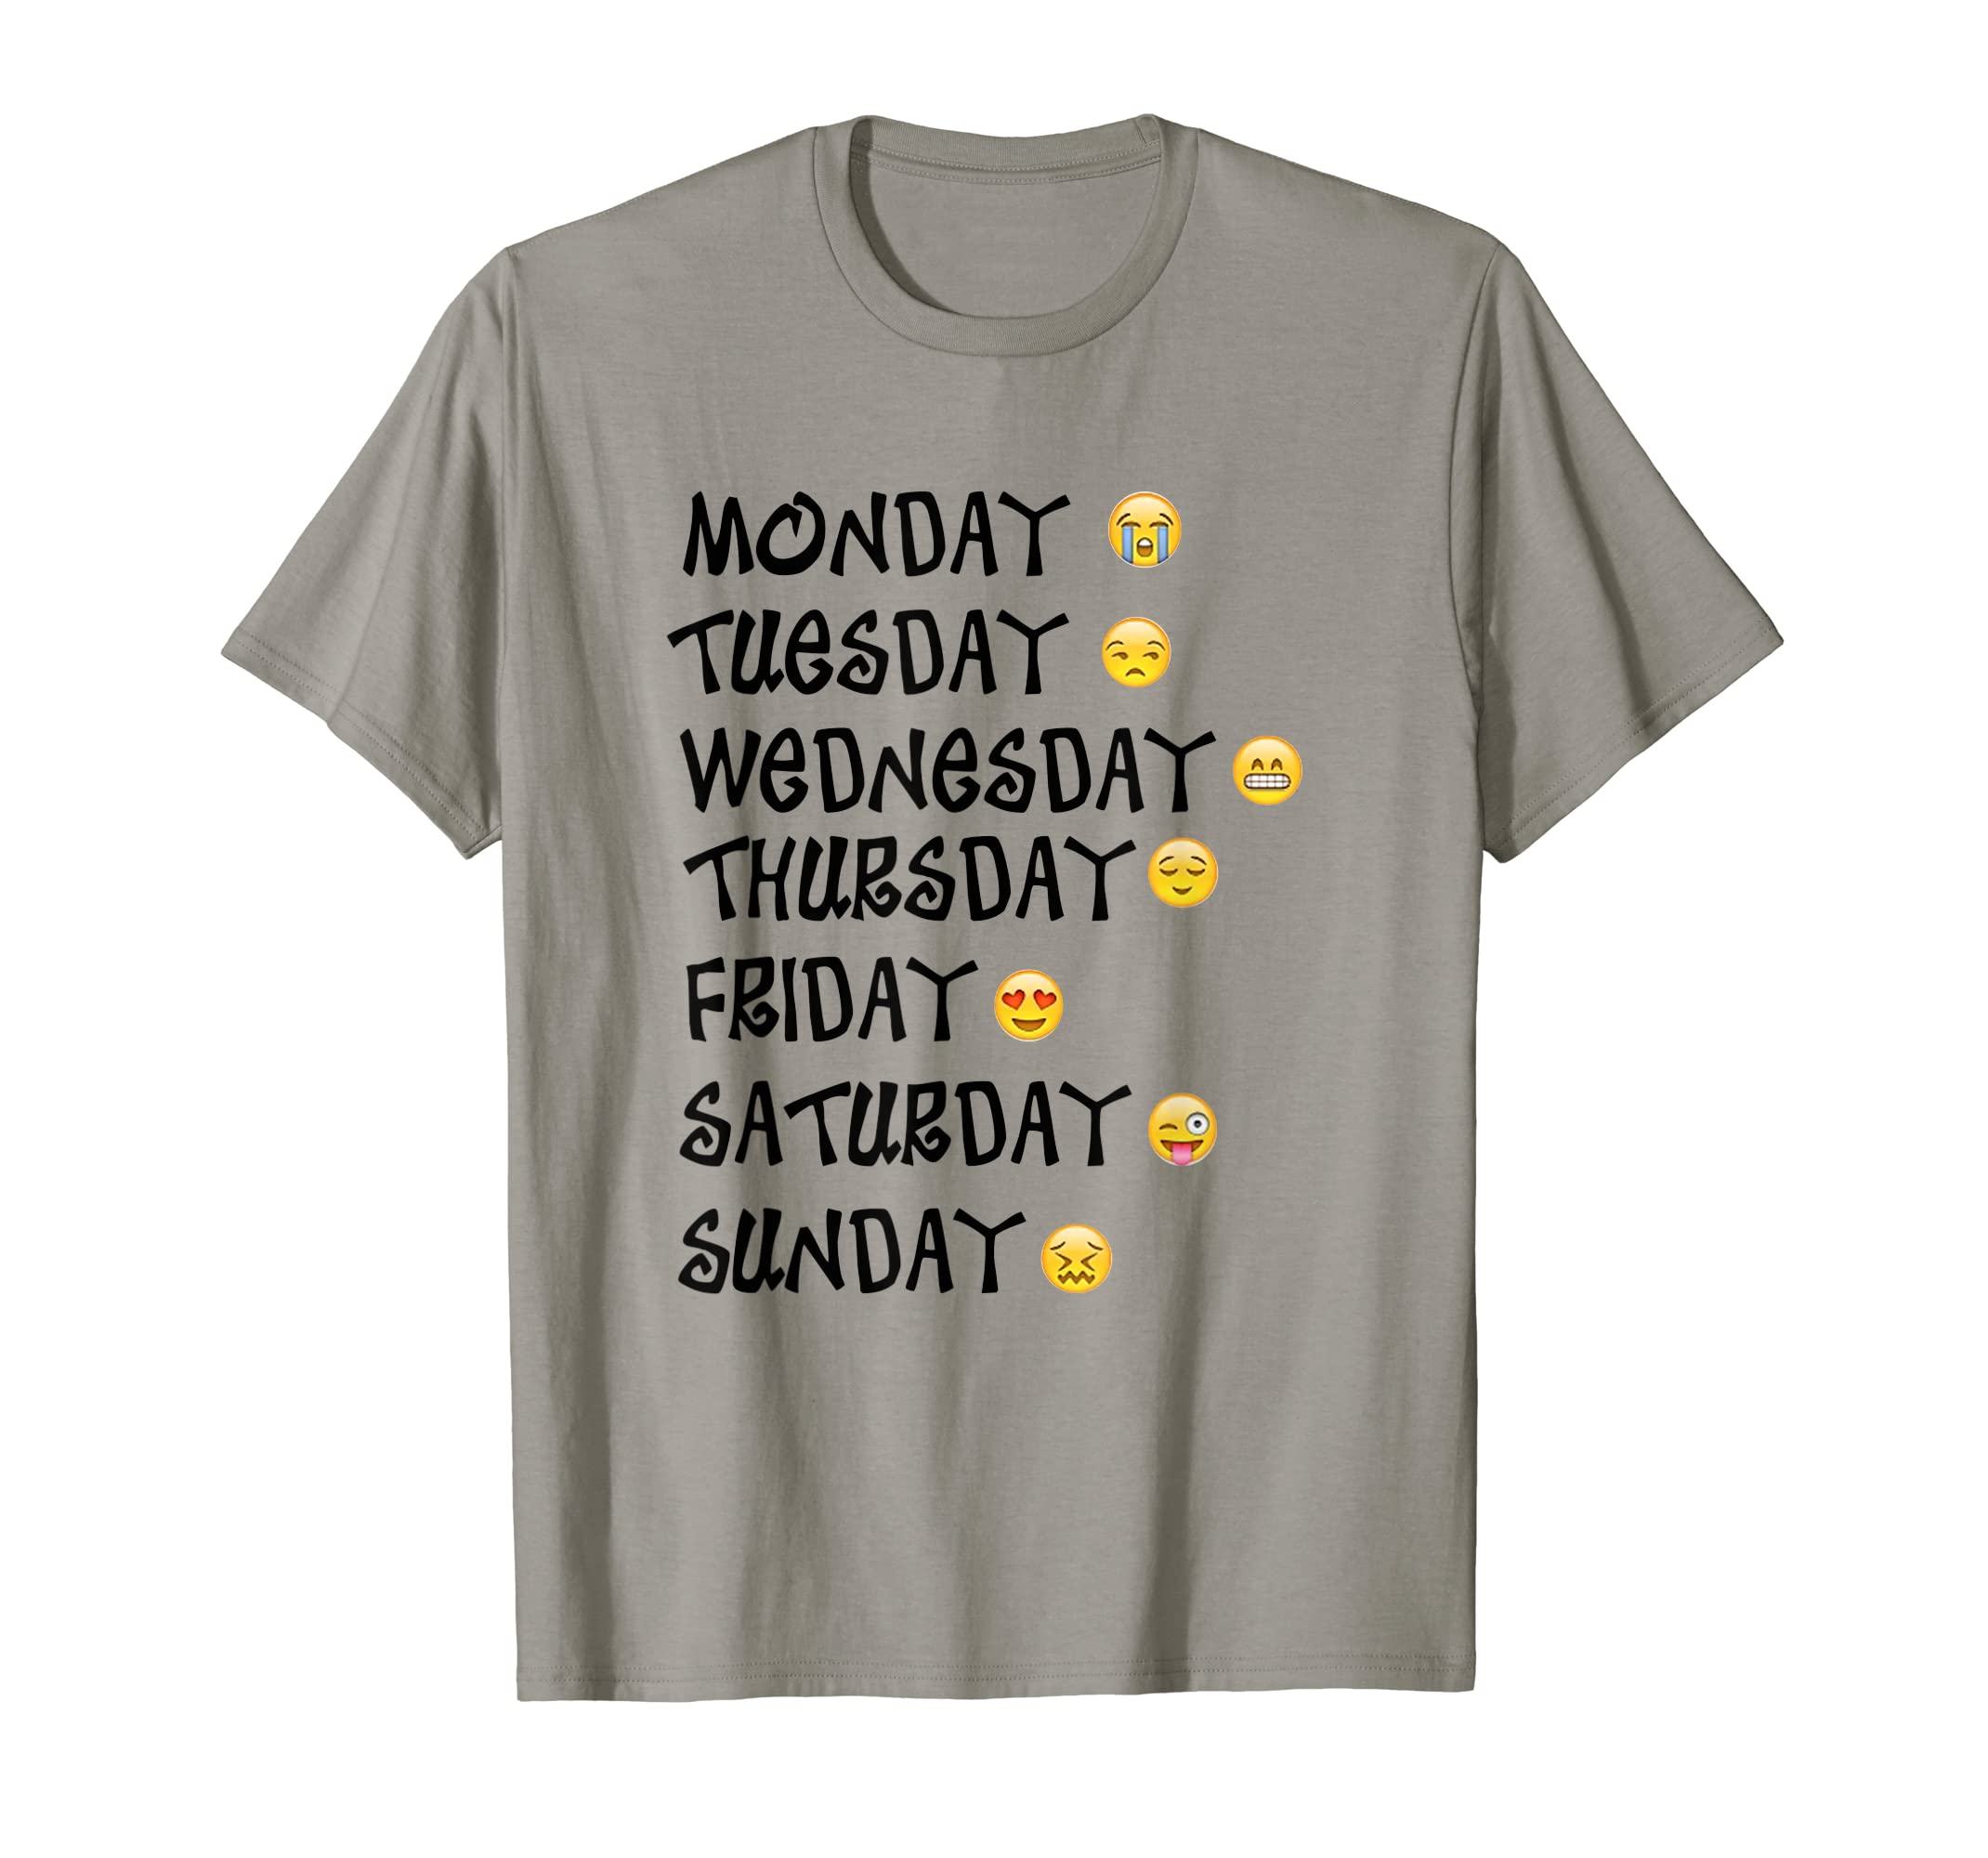 37fa8e67 Amazon.com: Emoji T-Shirt Love Your Emoticon Shirt 7 Days A Week!: Clothing